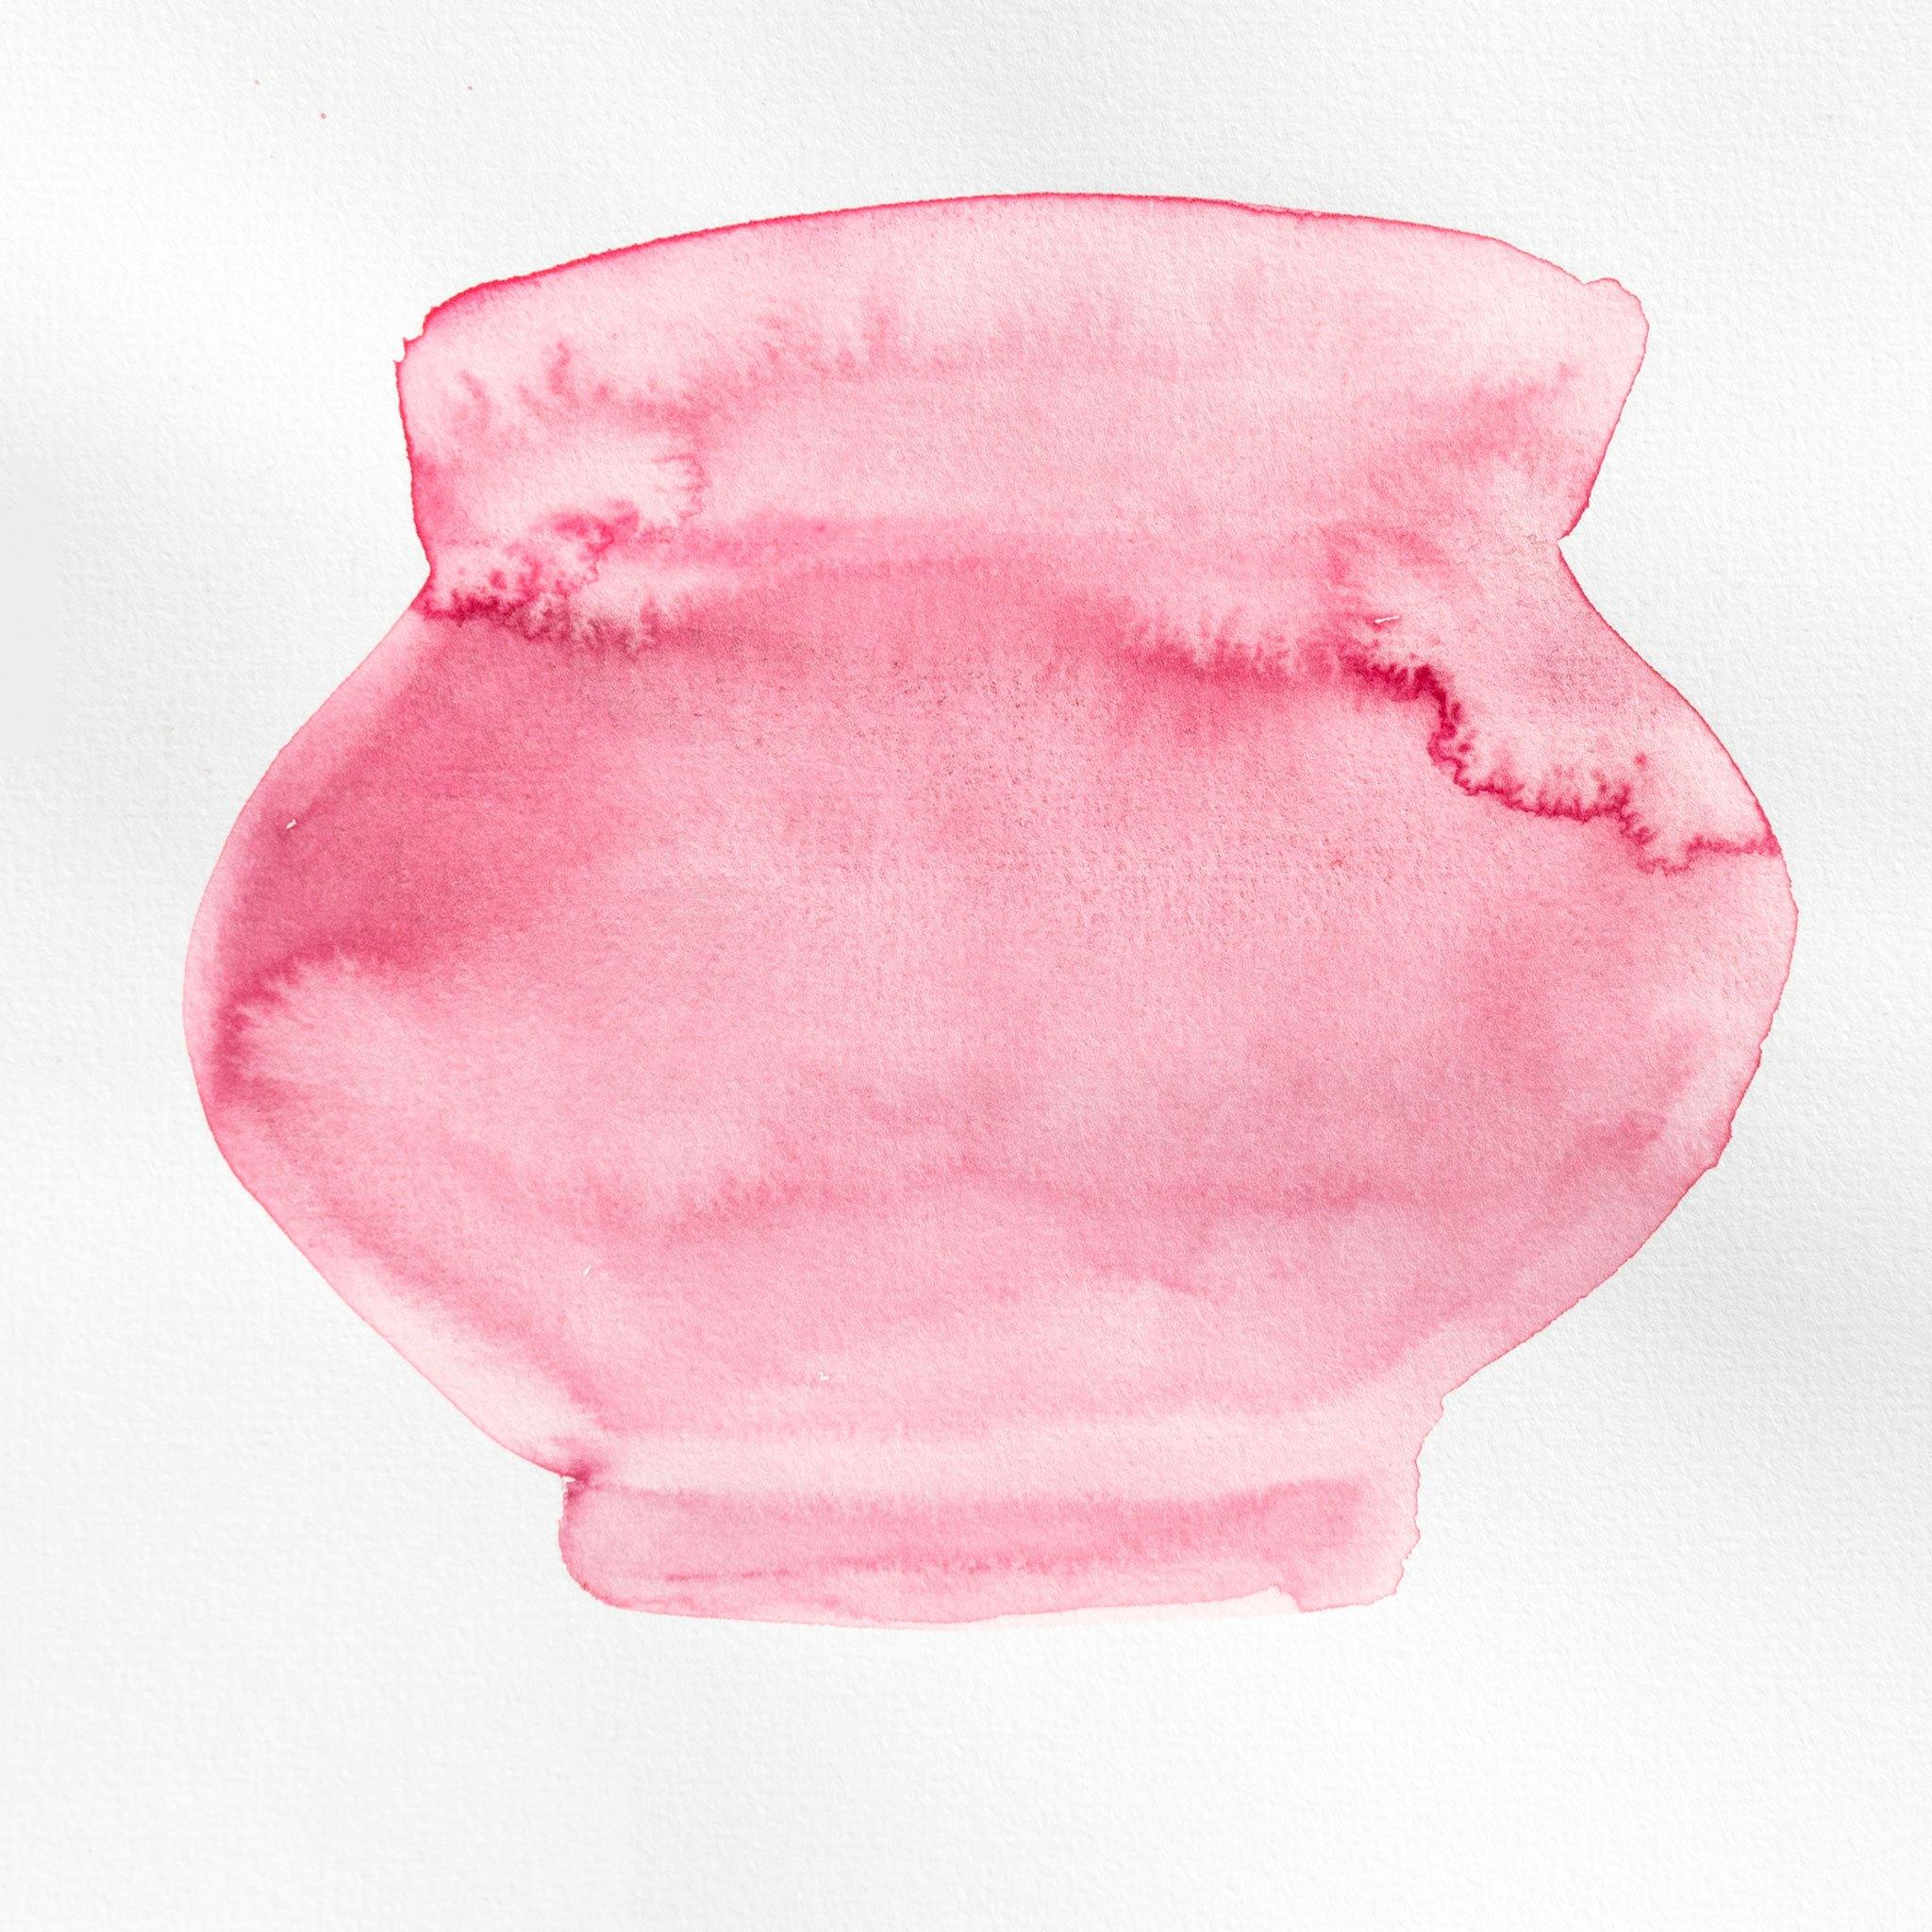 Tea Vessel 08, Original Work on Paper  by  Tea Vessel 08 Tappan